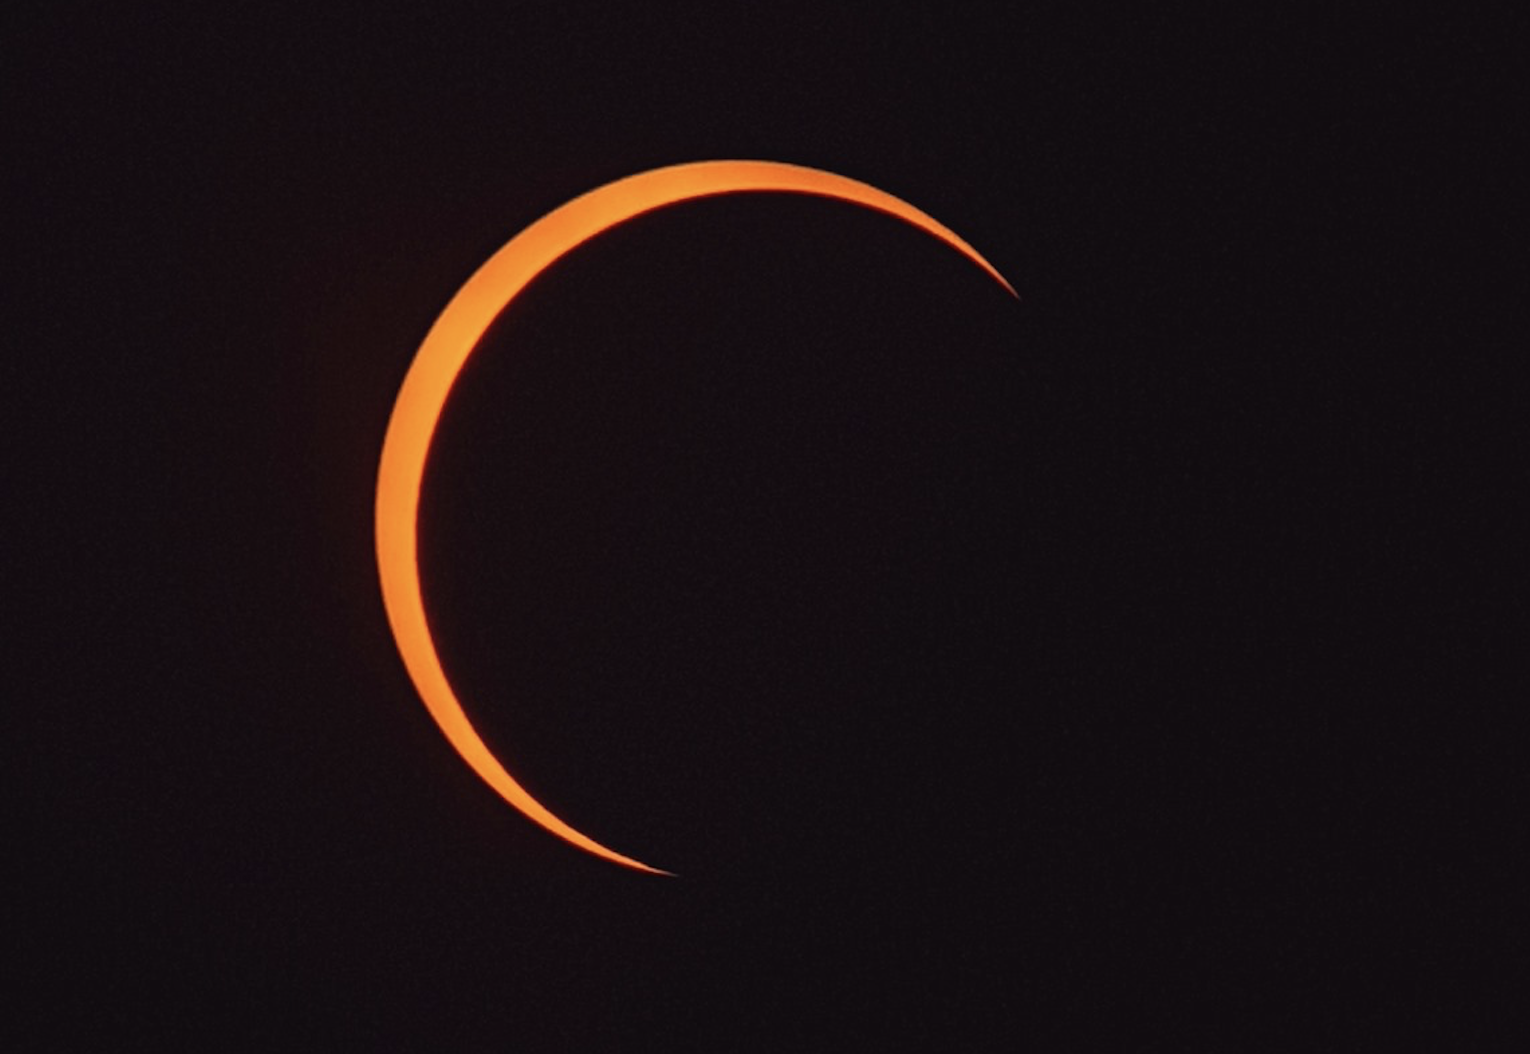 NUS Engineering undergrad and NUS Astronomical Society member Julian Cheung captured this image of the eclipse nearing its climax. Photo courtesy: Julian Cheung